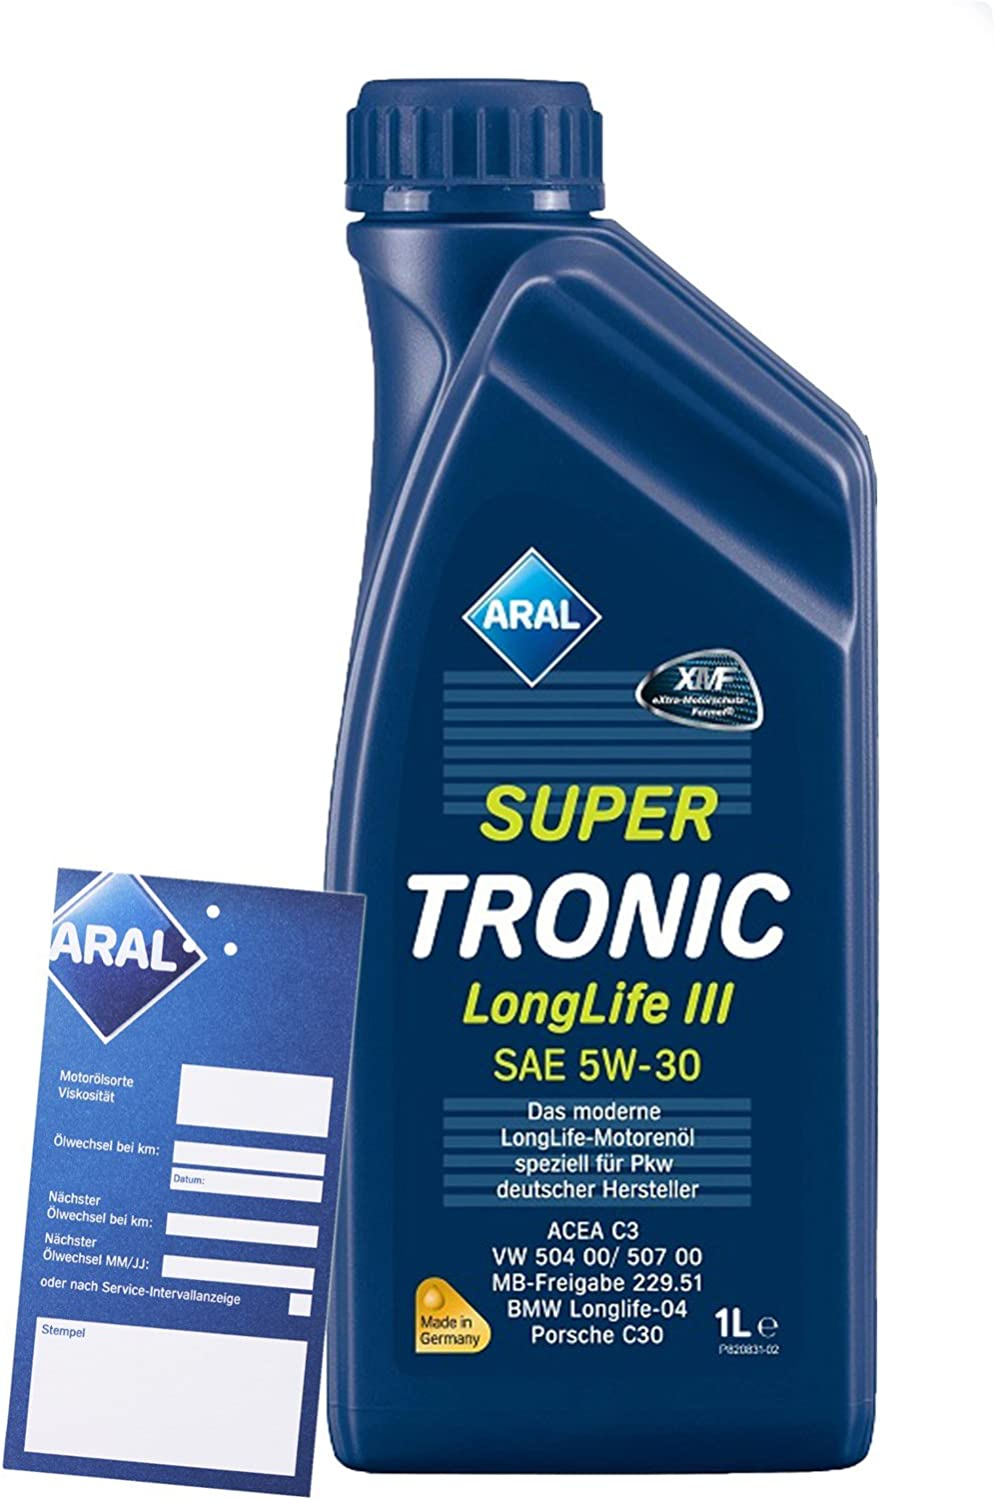 1 Litre Aral Supertronic Longlife Iii 3 5w 30 Engine Oil Including Oil Change Trailer Auto